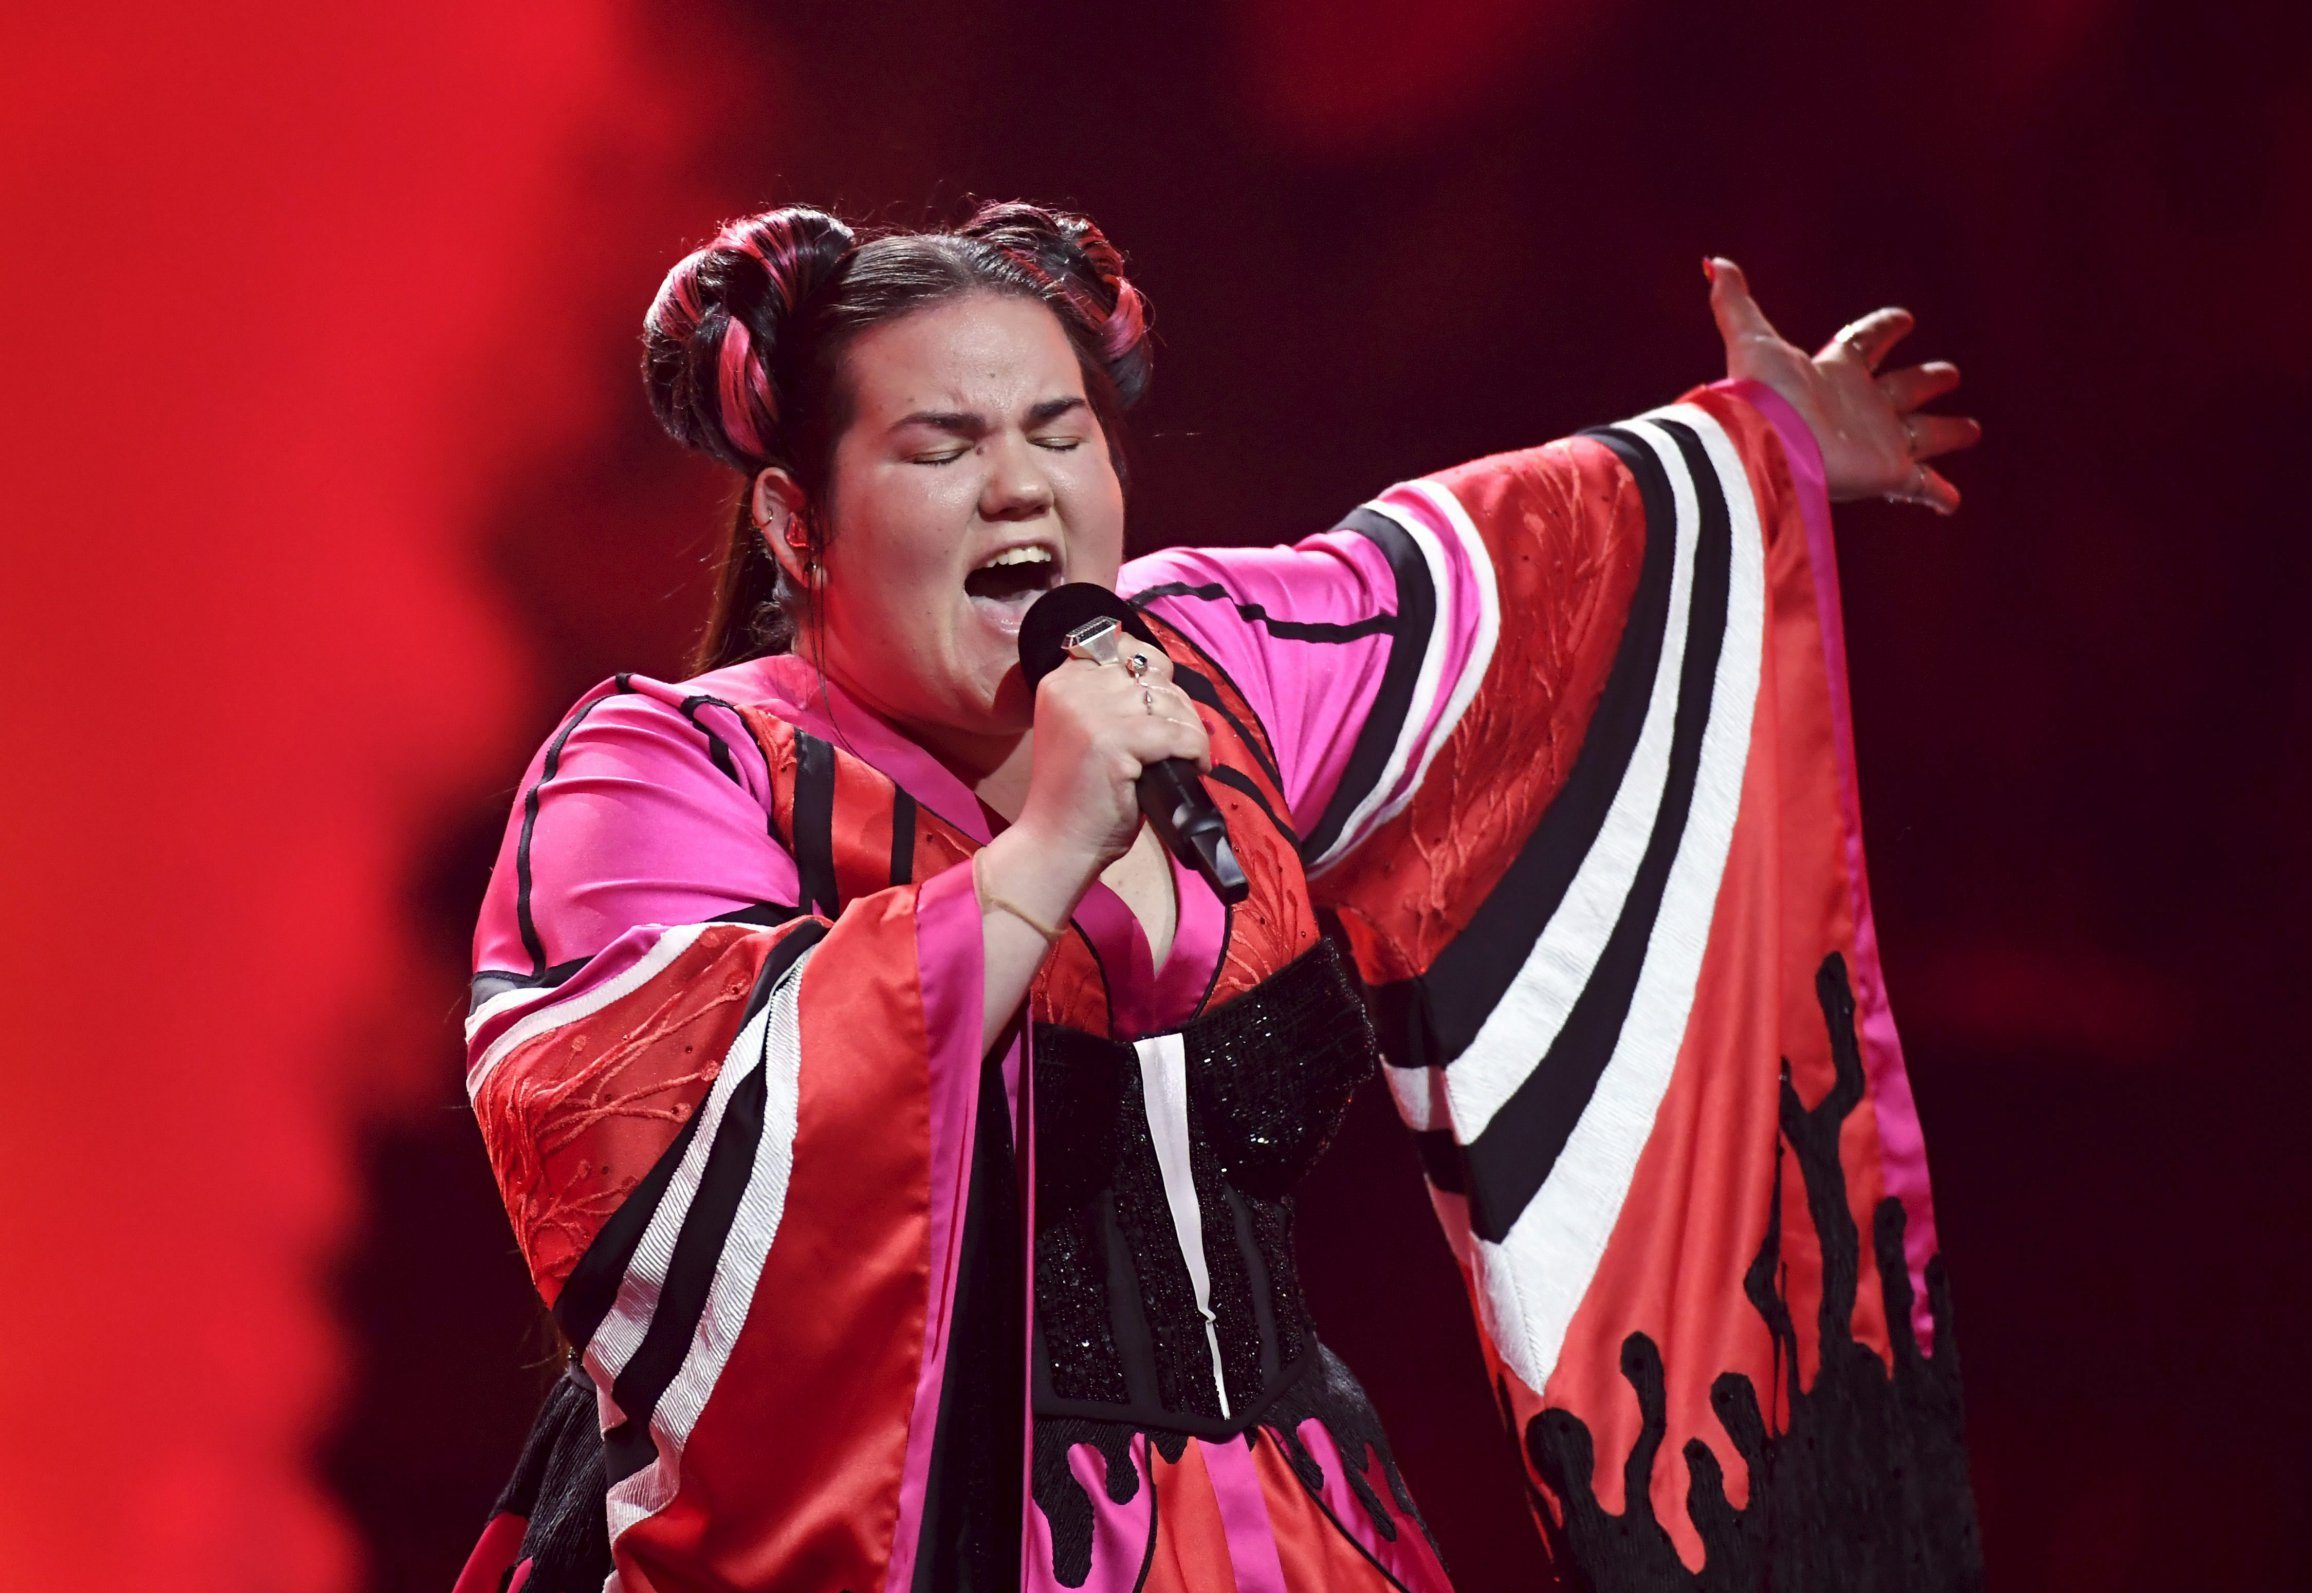 Israel won the first Eurovision semi-final while Norway won the second